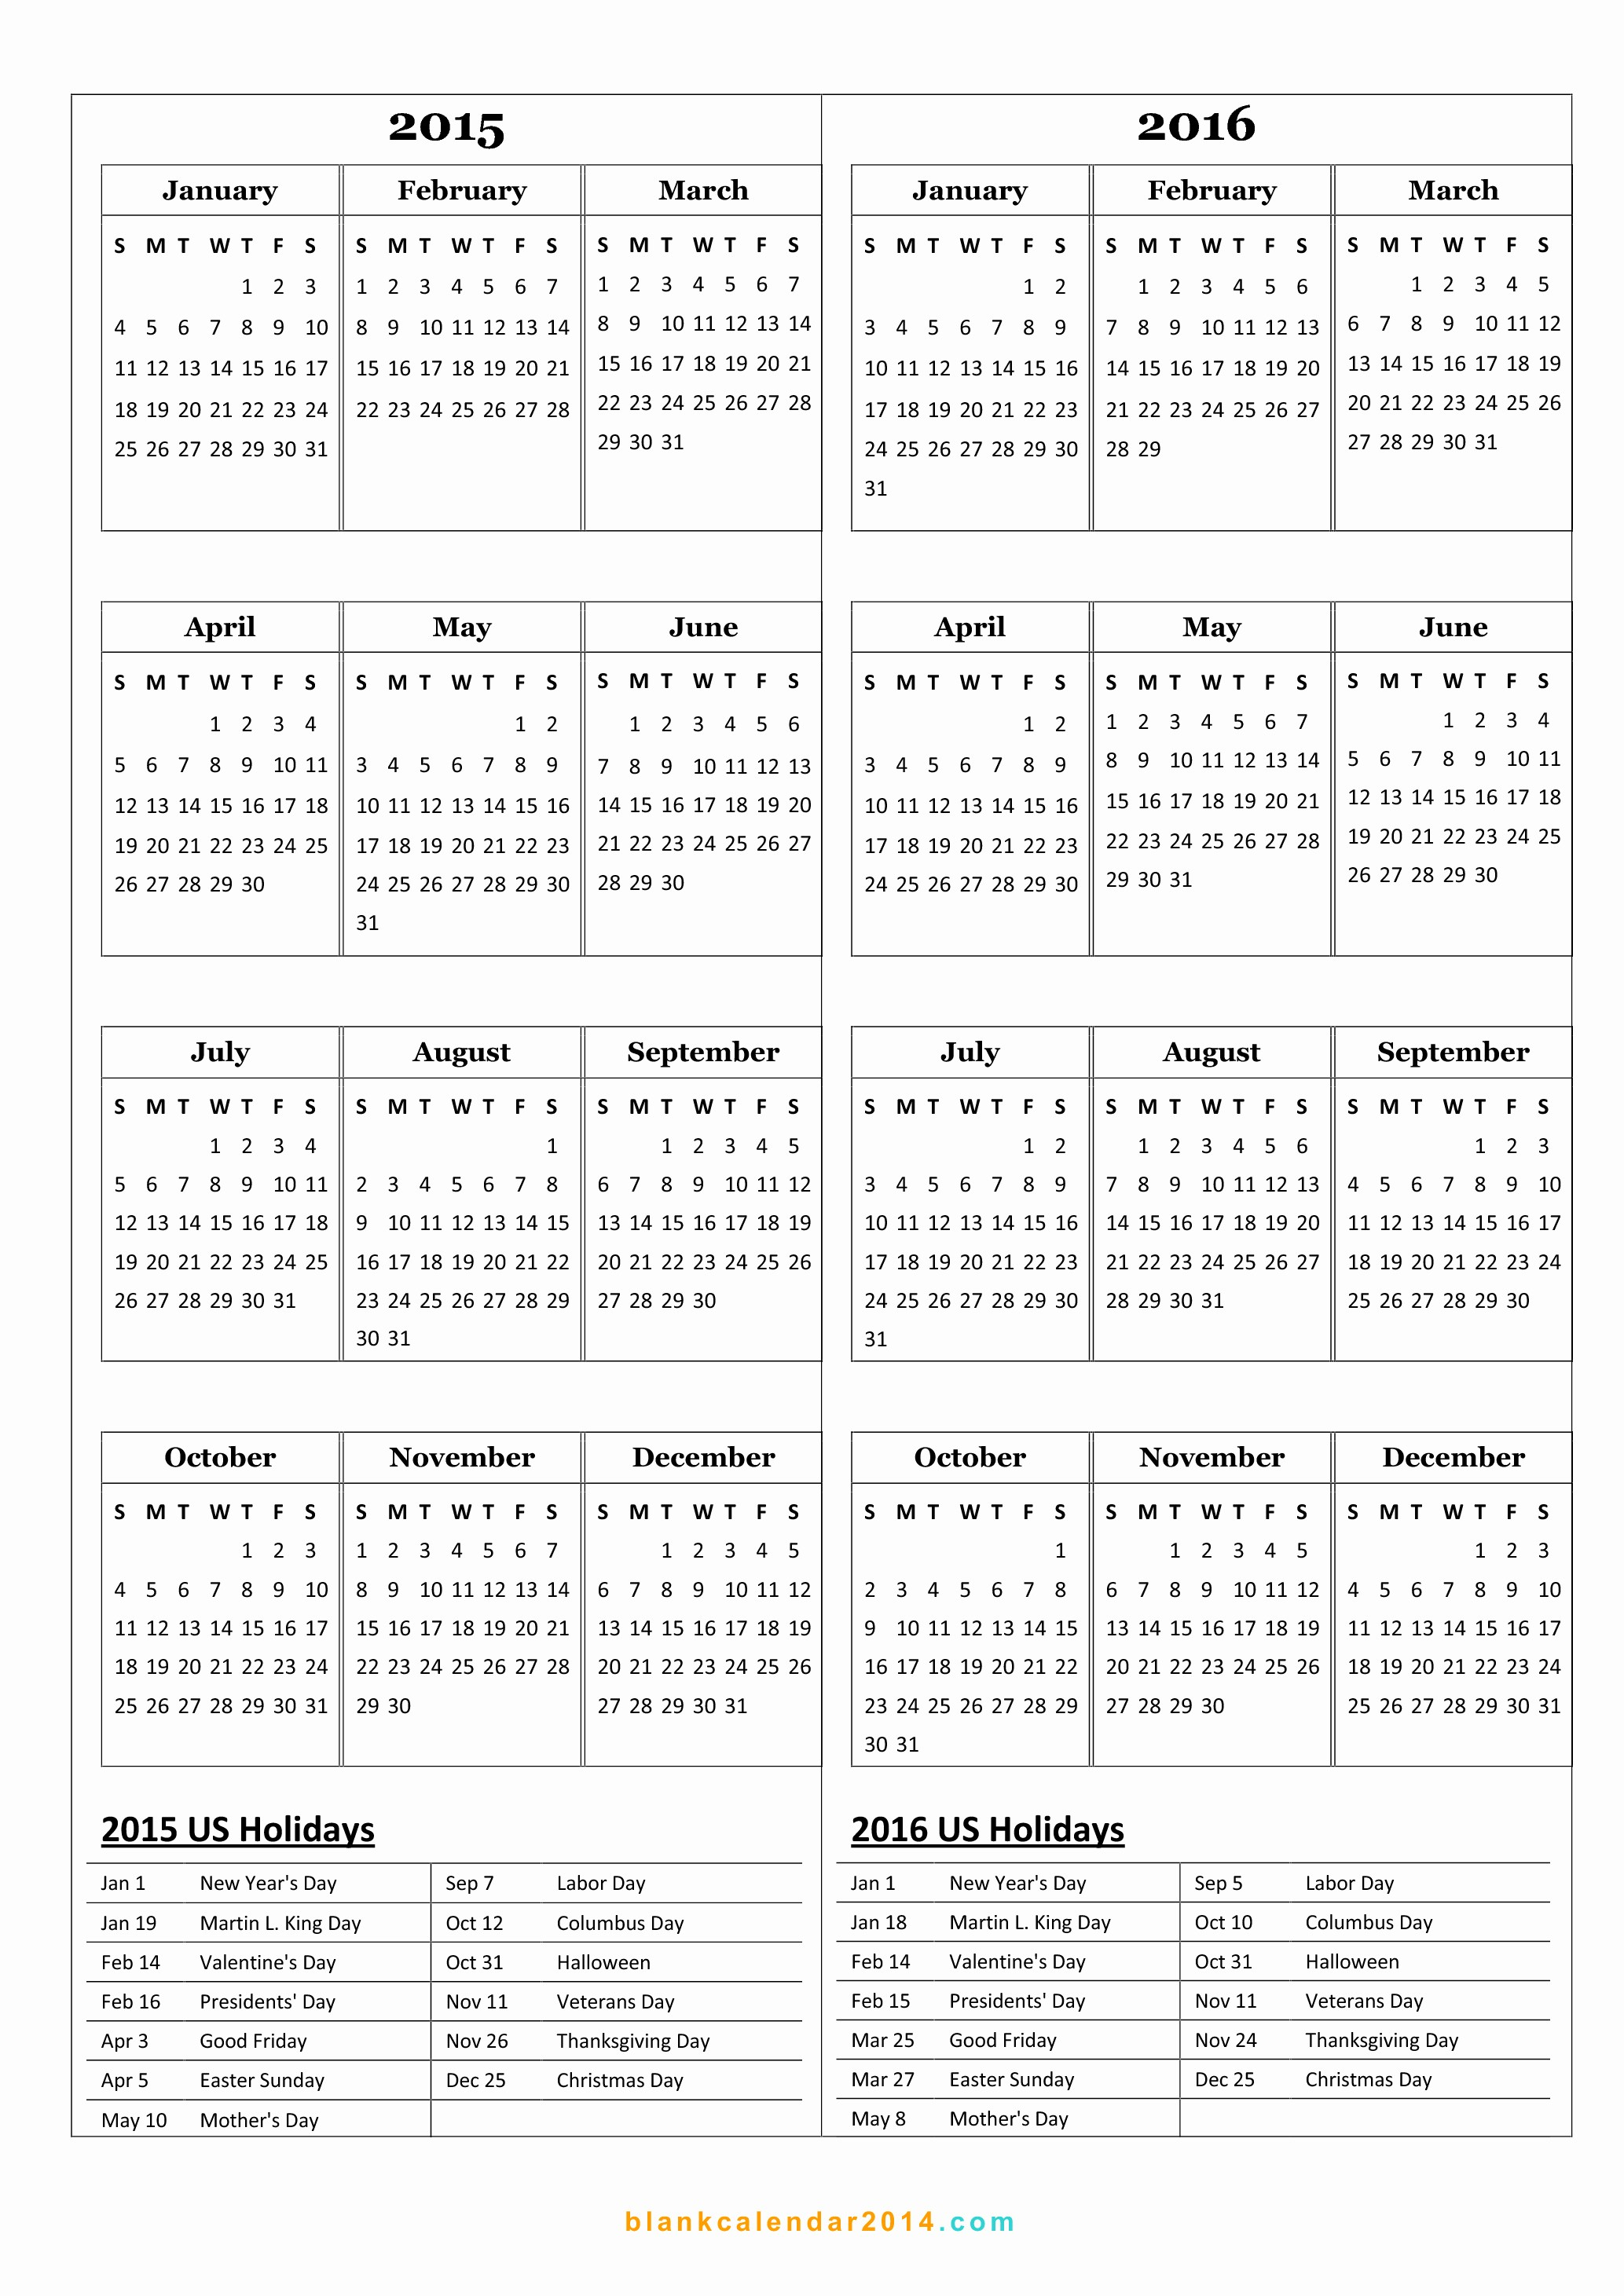 Calendar 2015 Printable with Holidays Unique Free 2015 Printable Calendar Template with Holidays